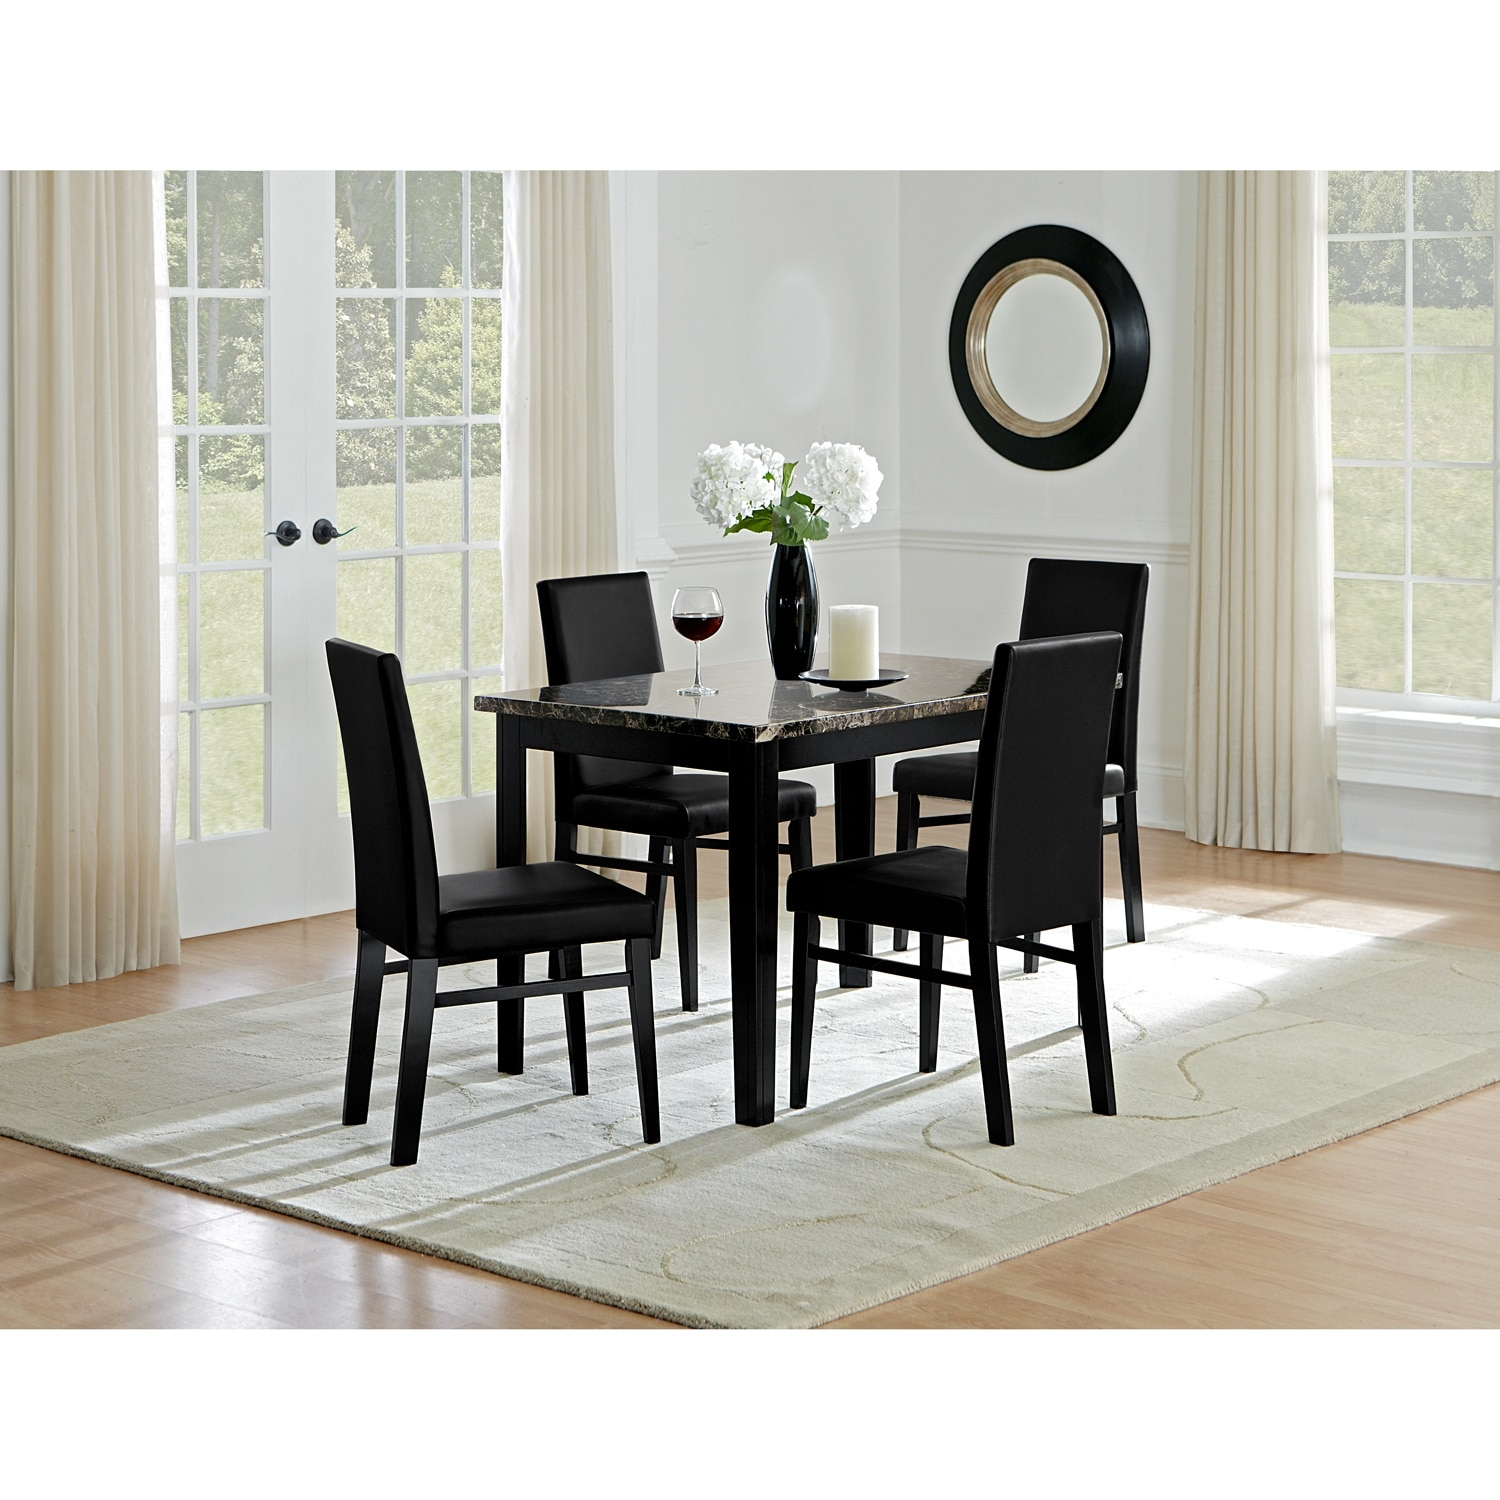 value city dining table and chairs textoline reclining garden chair argos shadow 4 black furniture